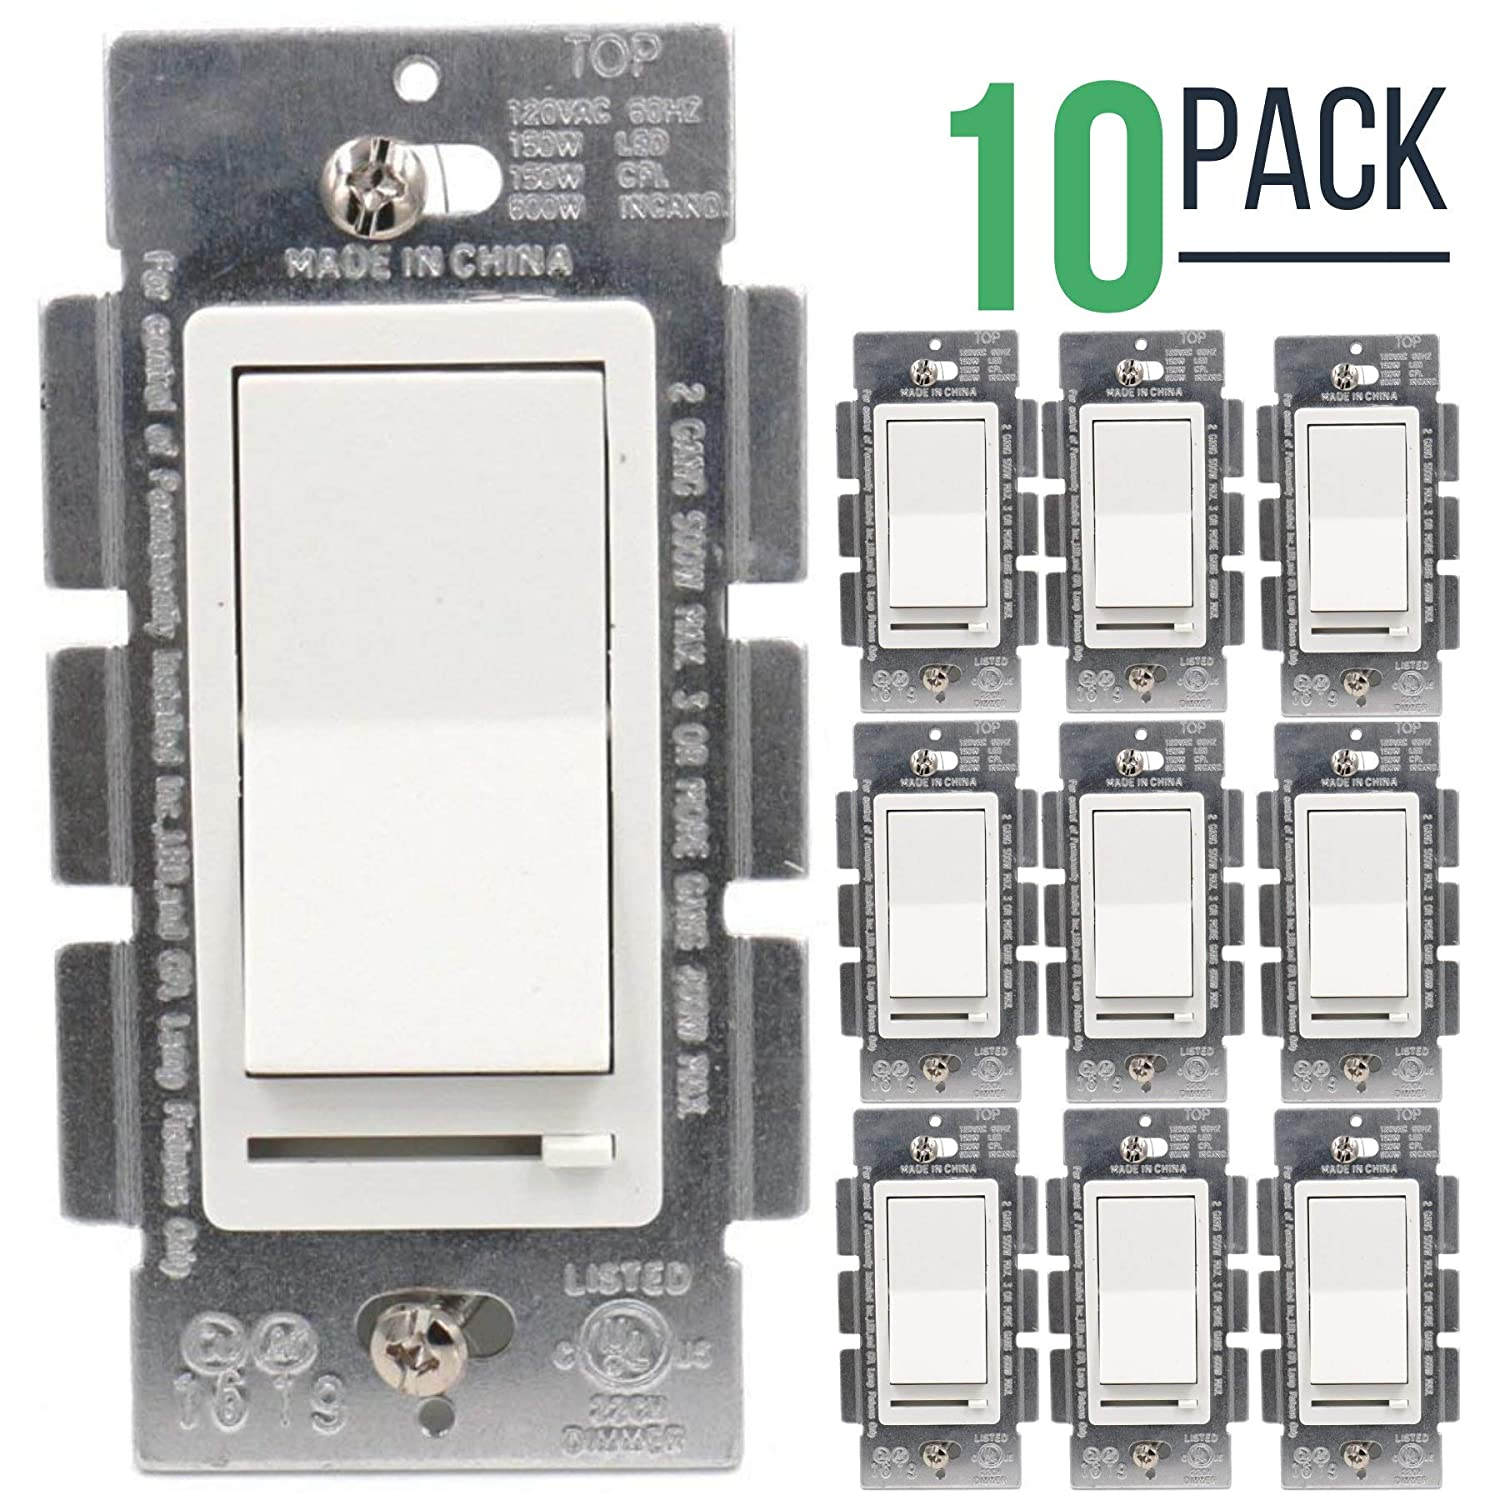 3 Way White Dimmer Switch Single Pole Decora Rocker Slide Fluorescent 150w Led For Dimmable